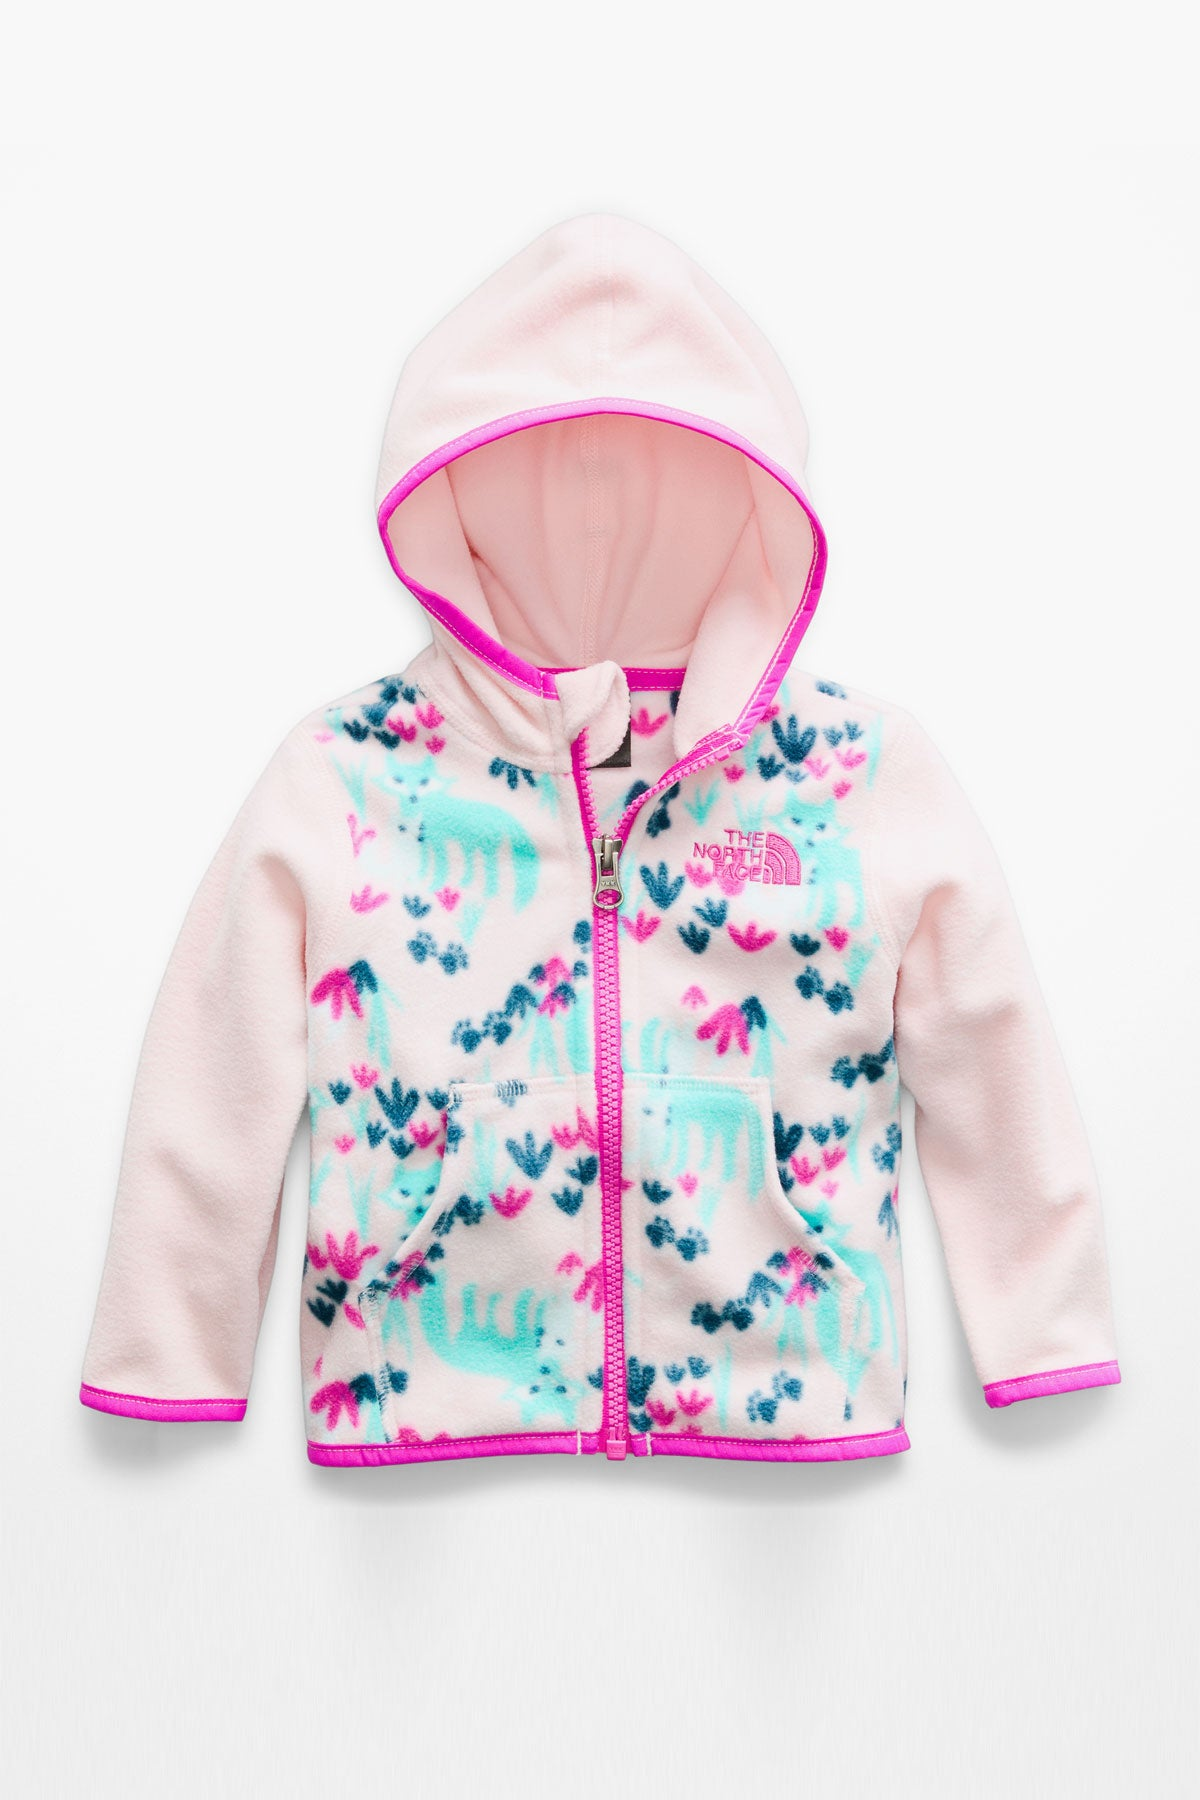 8663f0d2d The North Face Infant Glacier Full Zip Hoodie - Purdy Pink Fox ...